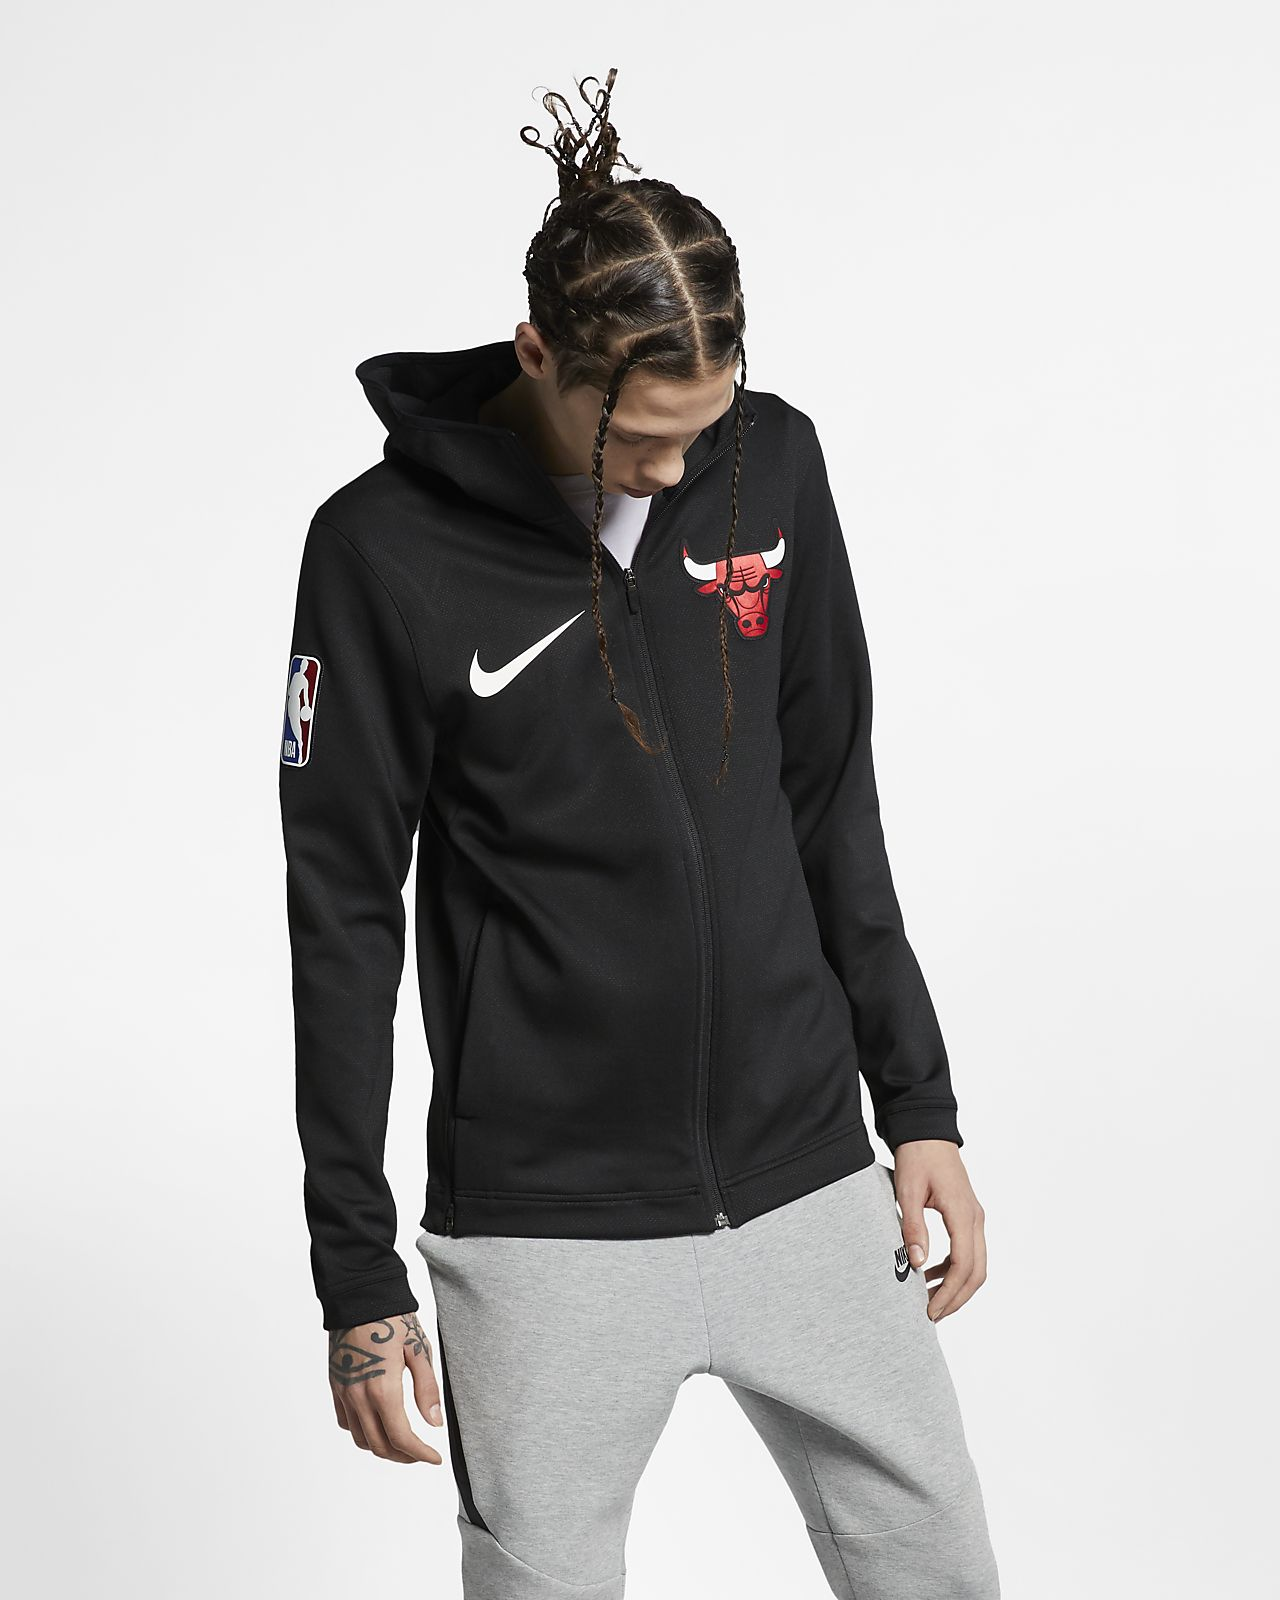 5b3e2f737 Chicago Bulls Nike Therma Flex Showtime Men s NBA Hoodie. Nike.com GB